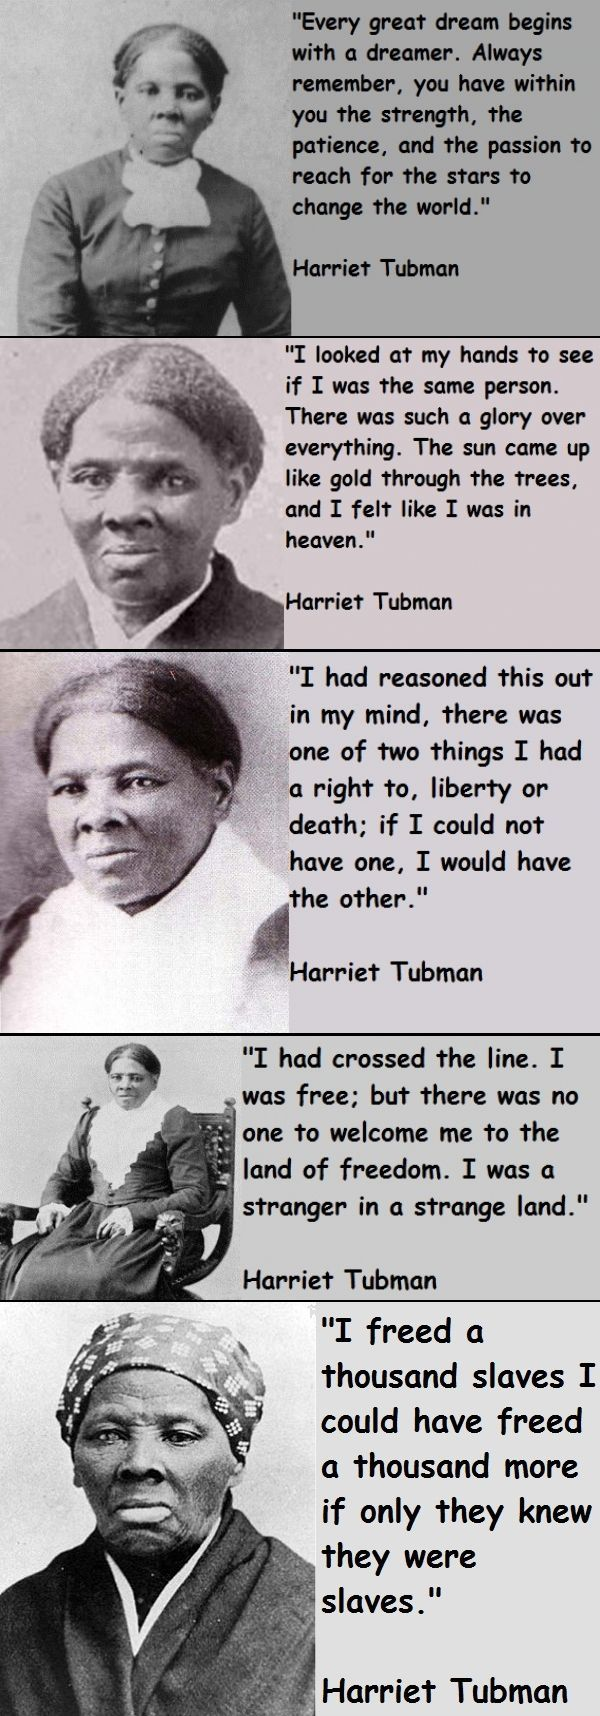 """Harriet Tubman became famous as a """"conductor"""" on the Underground Railroad during the turbulent 1850s. Born a slave on Maryland's eastern shore, she endured the harsh existence of a field hand, including brutal beatings. In 1849 she fled slavery, despite a bounty on her head, she returned to the South at least 19 times to lead her family & hundreds of other slaves to freedom via the Underground Railroad. Tubman also served as a scout, spy and nurse during the Civil War. #tubman"""